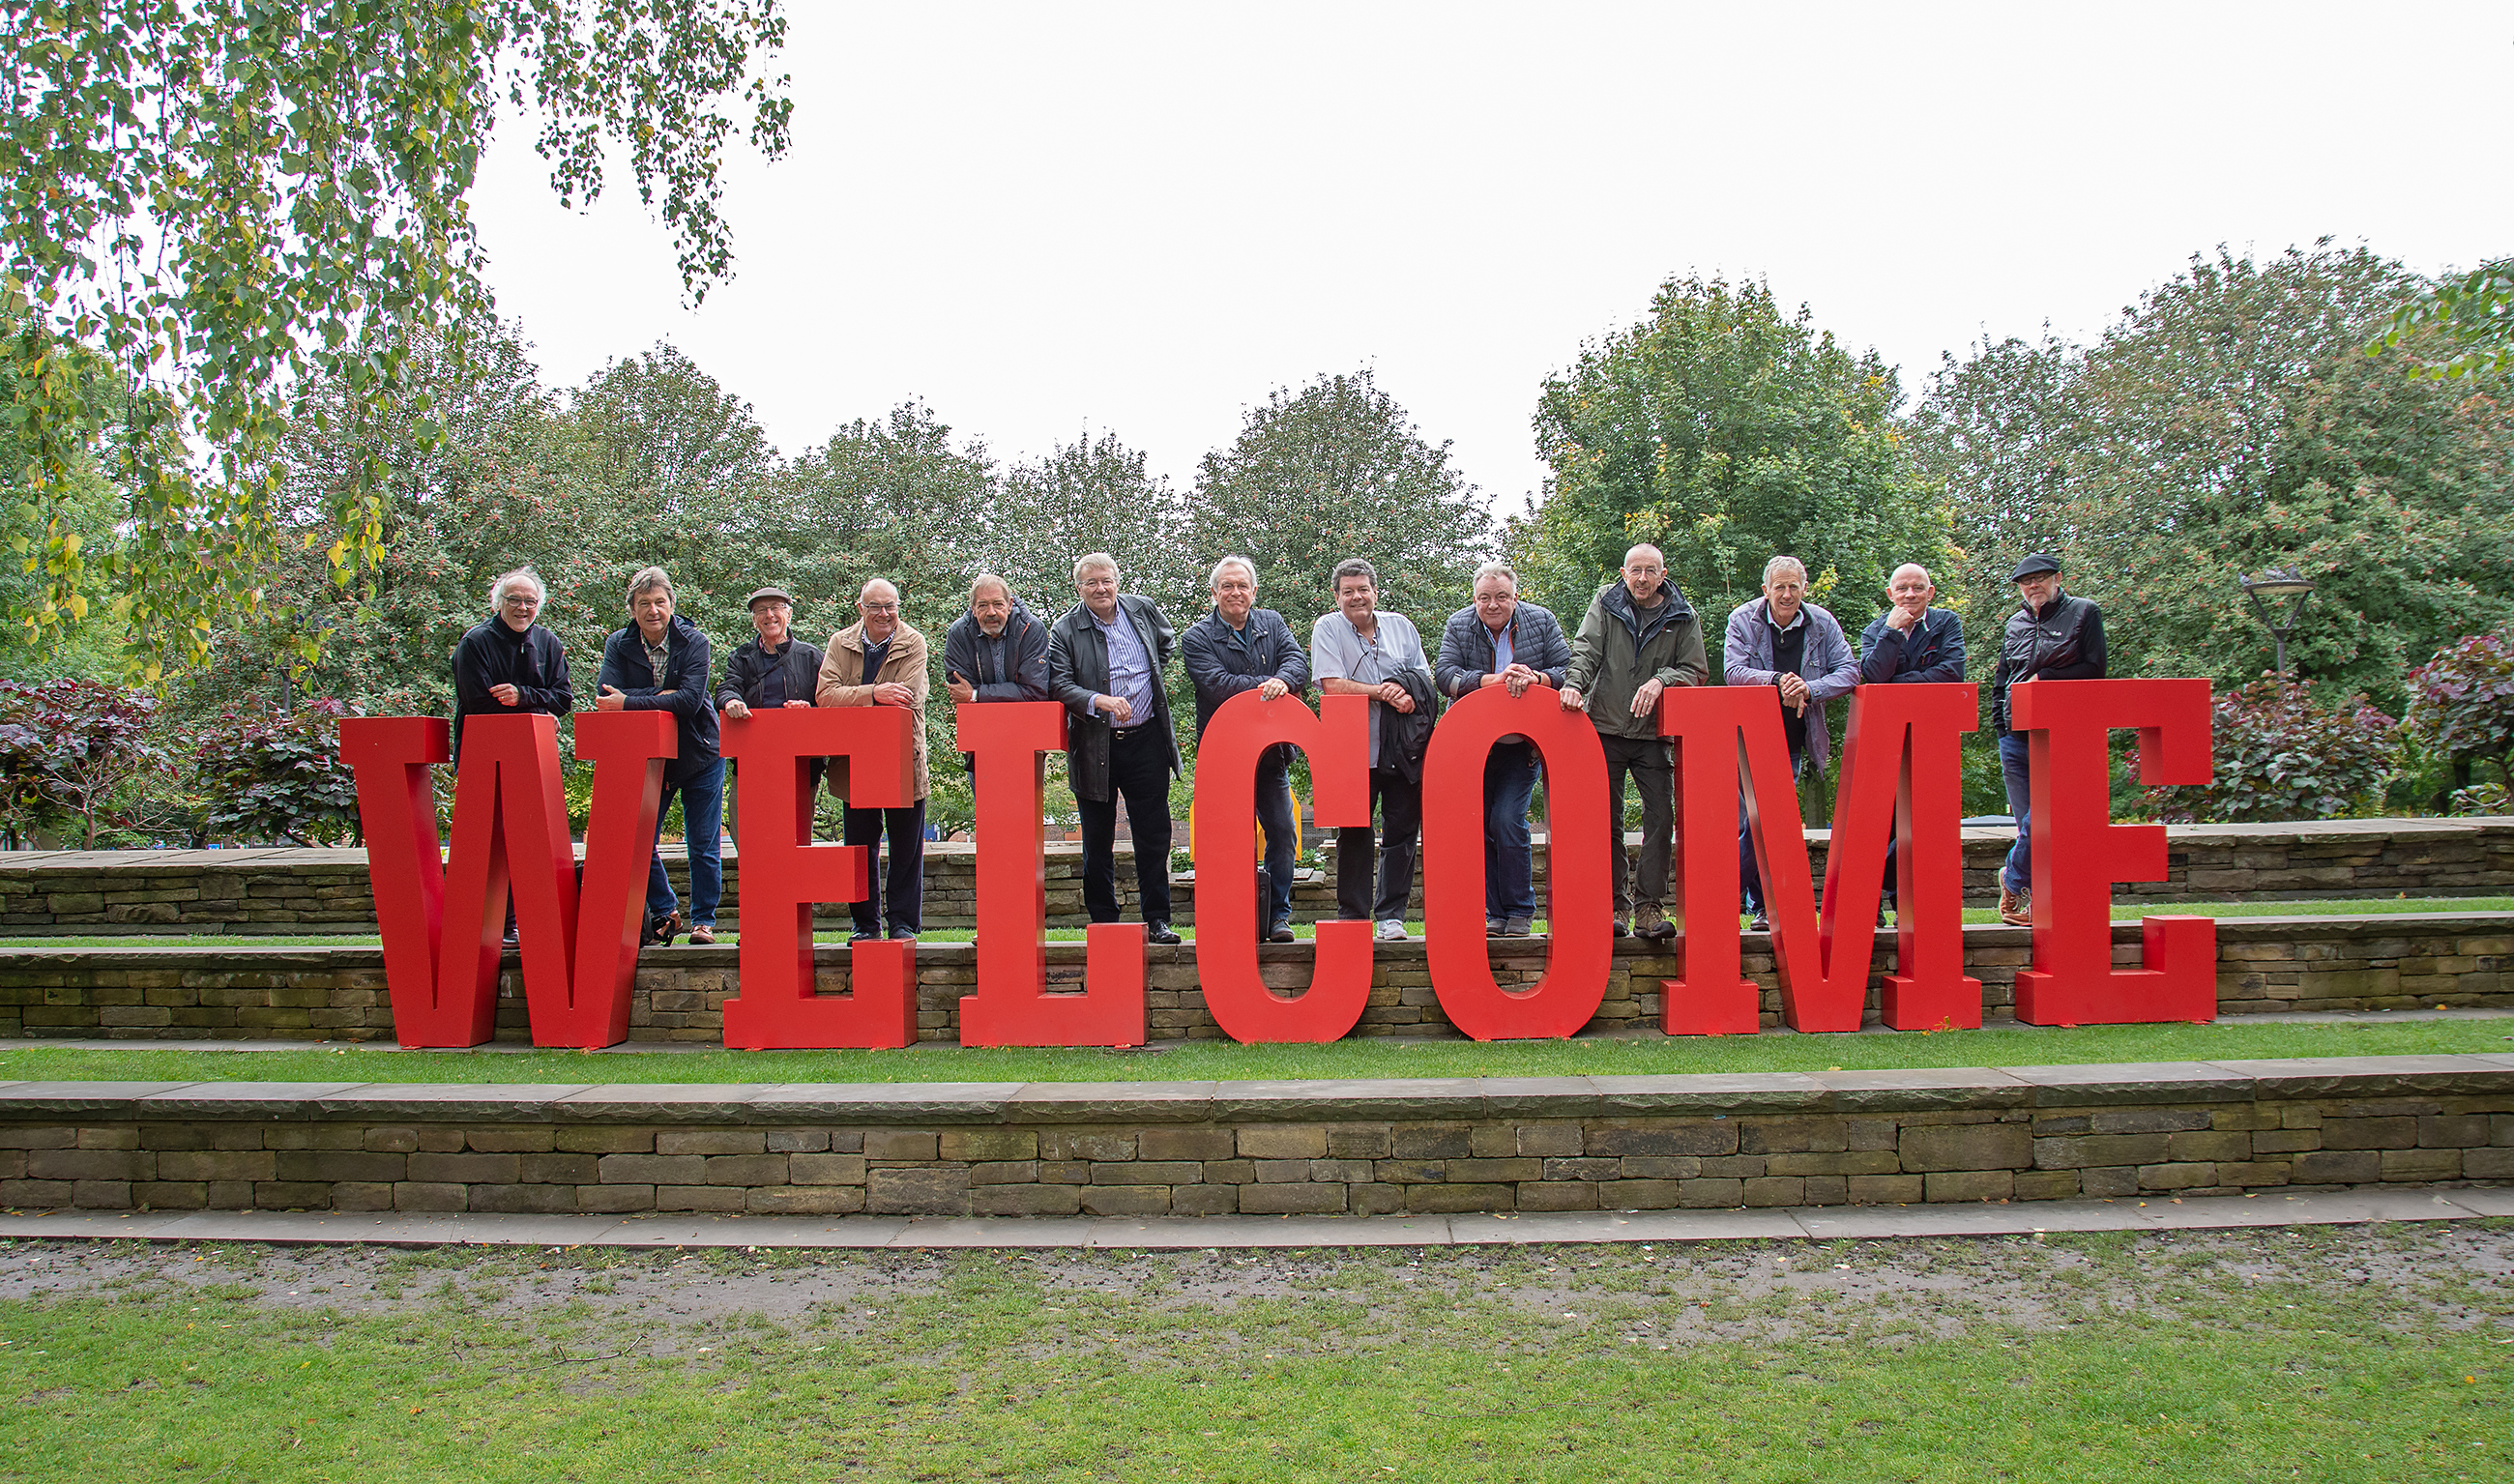 Architecture alumni return to campus 50 years on